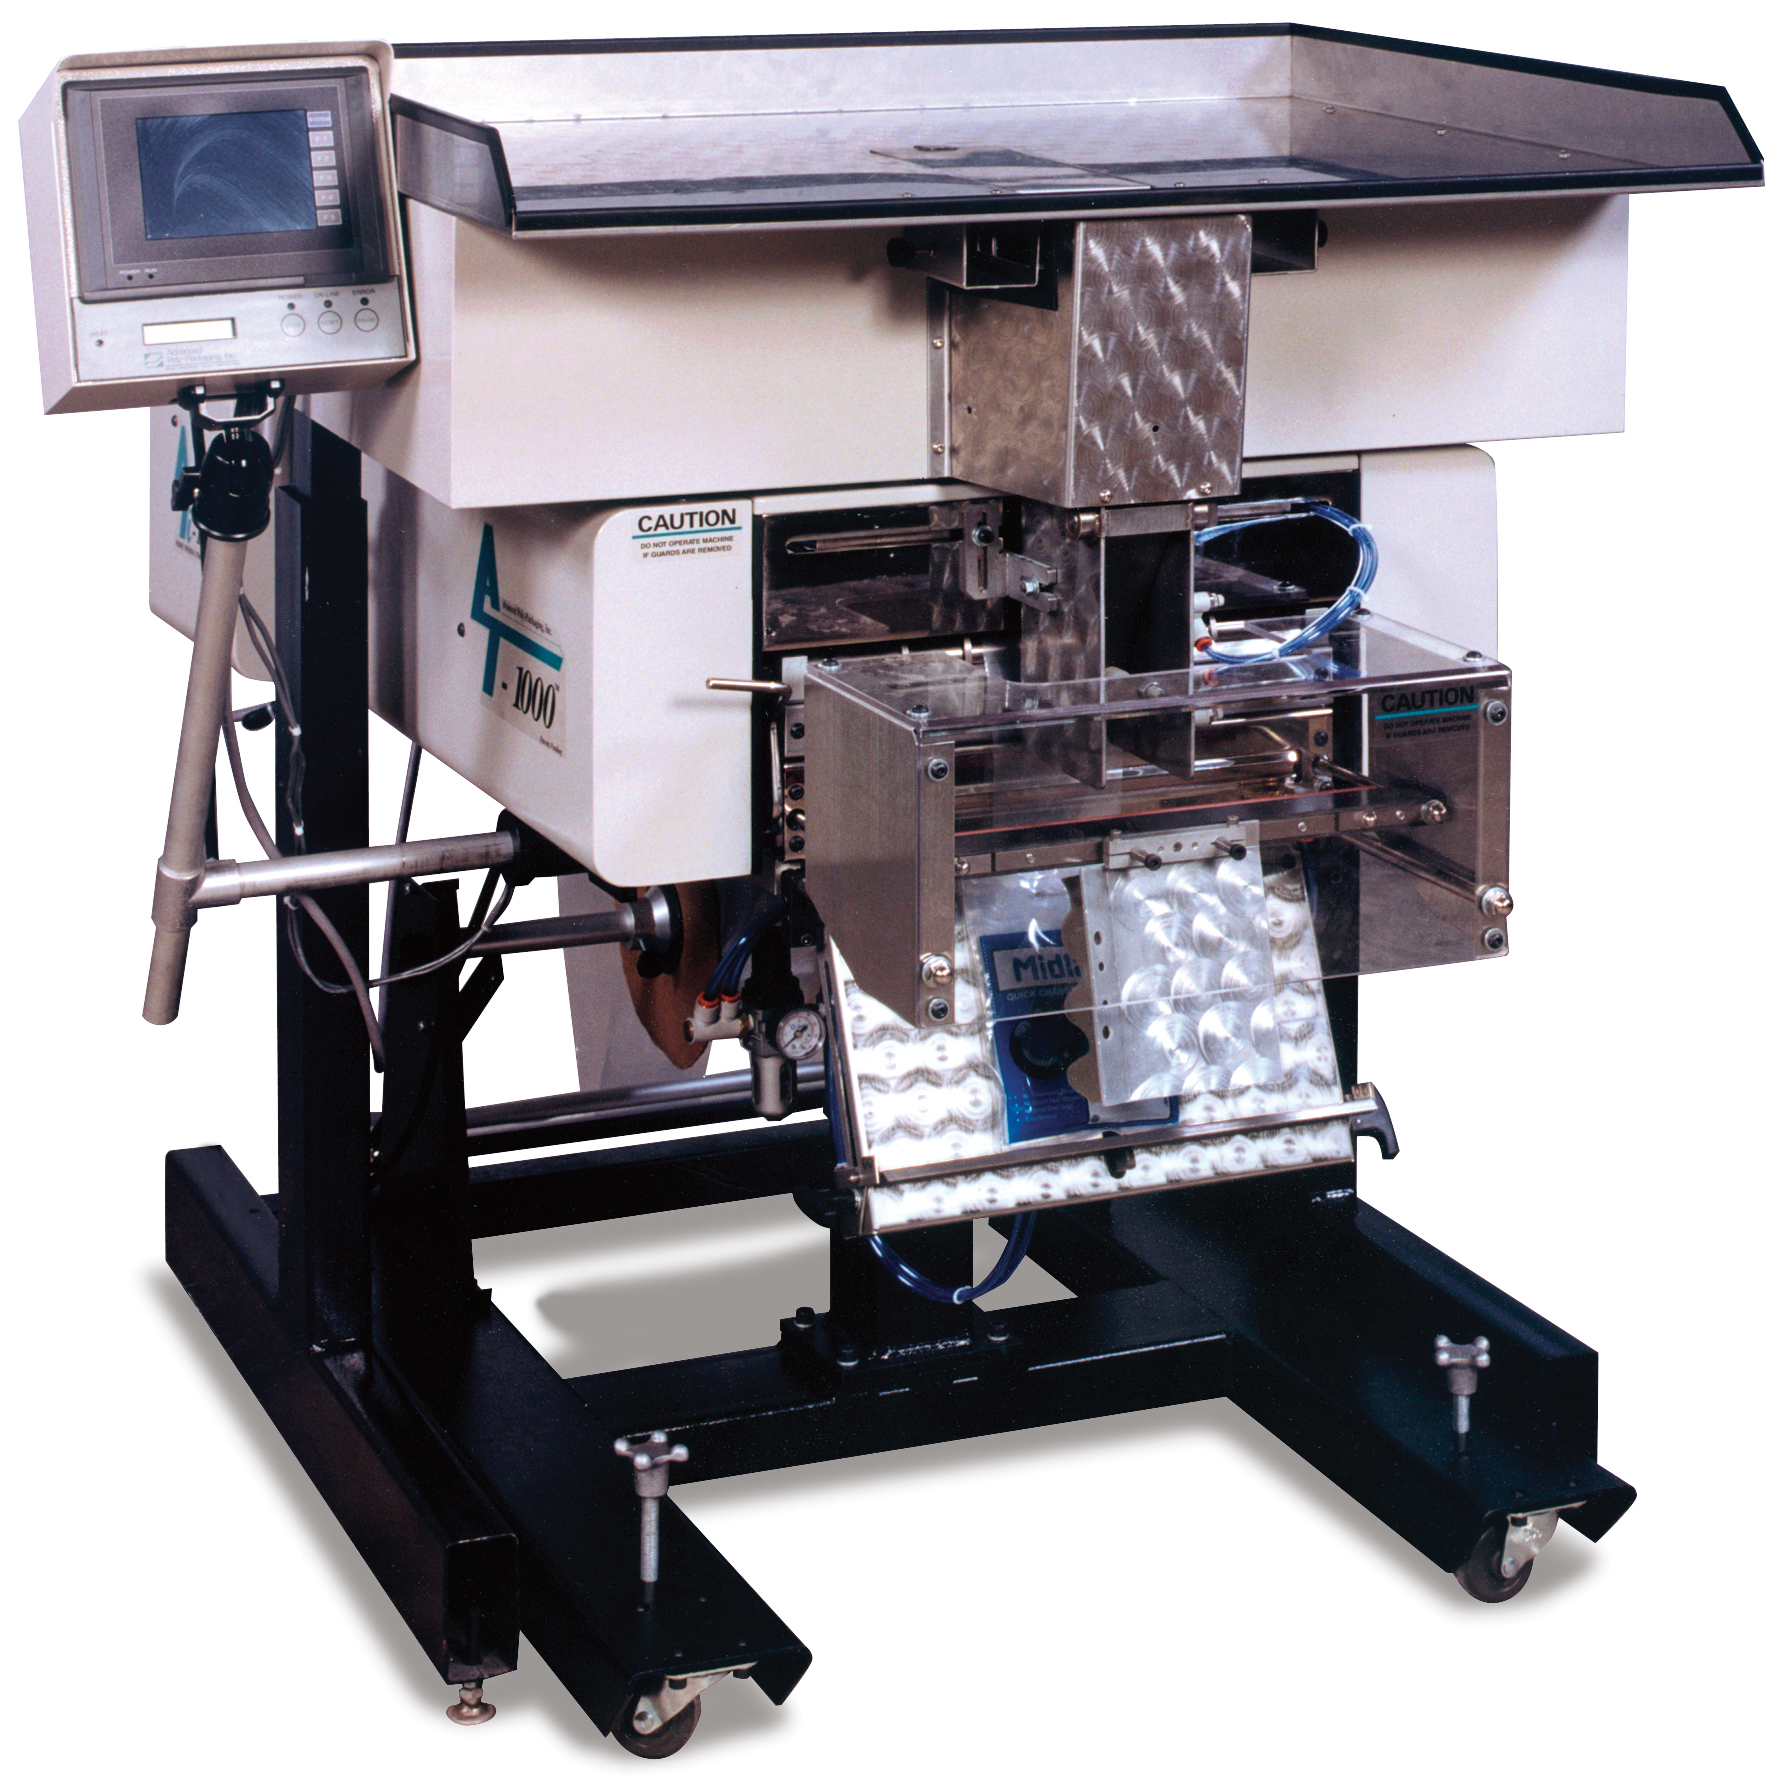 Model US-5000 Semi-Automatic Netweigh-Counting Scale